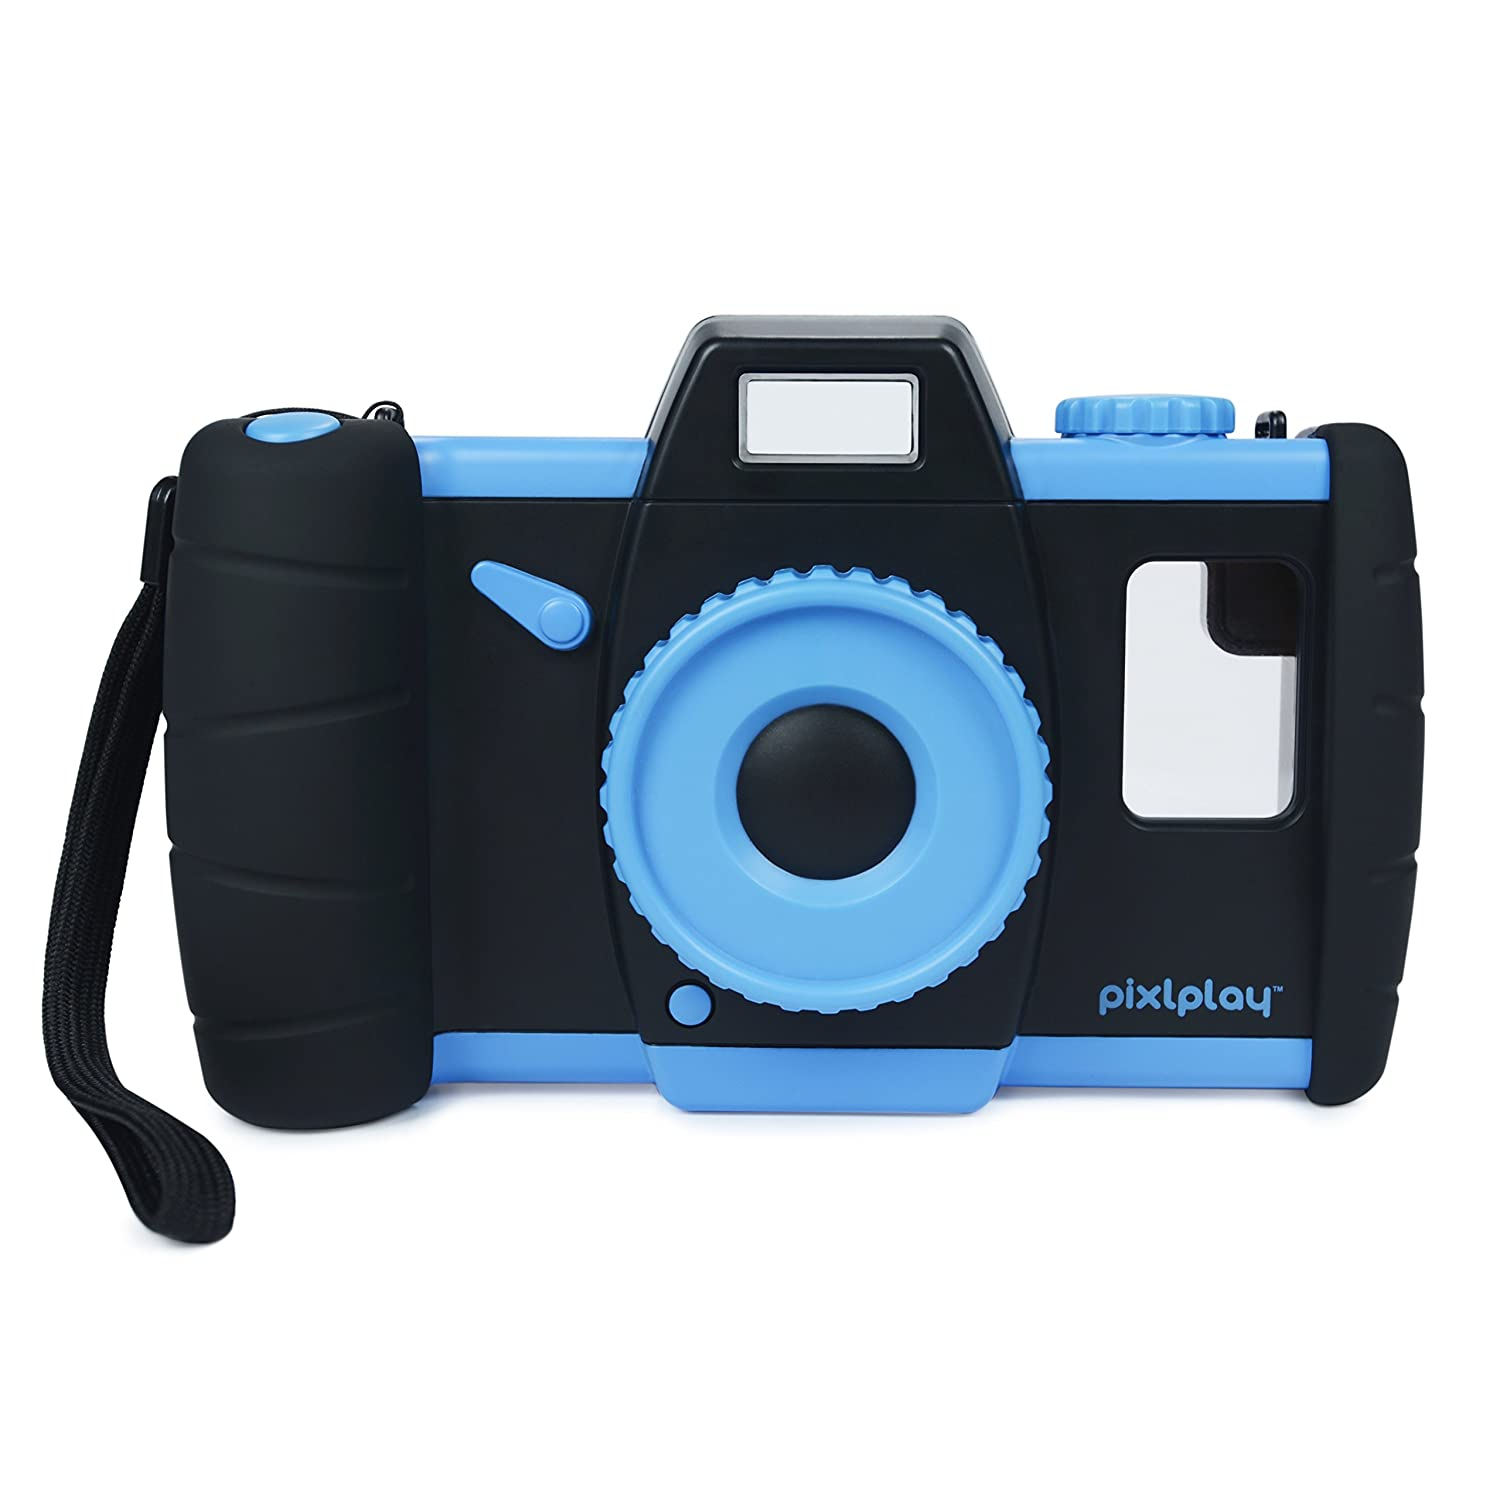 Pixlplay Camera (Orange) - Turn Your Smartphone Into a Fun Kids' Camera